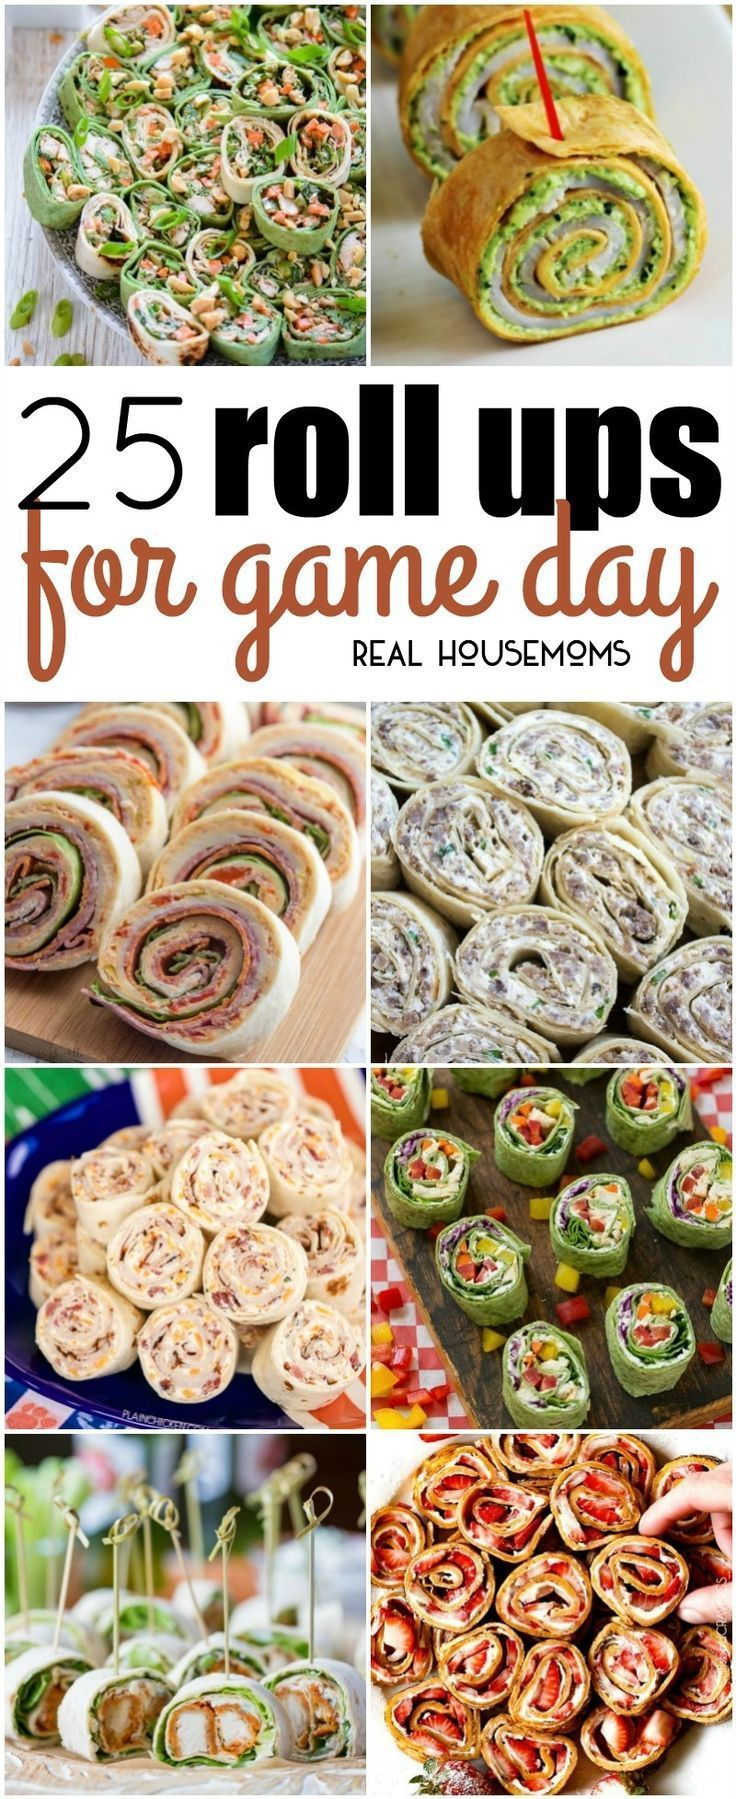 25 Roll Ups for Game Day. Finger foods, football games, pinwheel appetizers, party menu, crowd go wild! #Roundups #Gamedayppetizers #Rollups #Realhousemoms